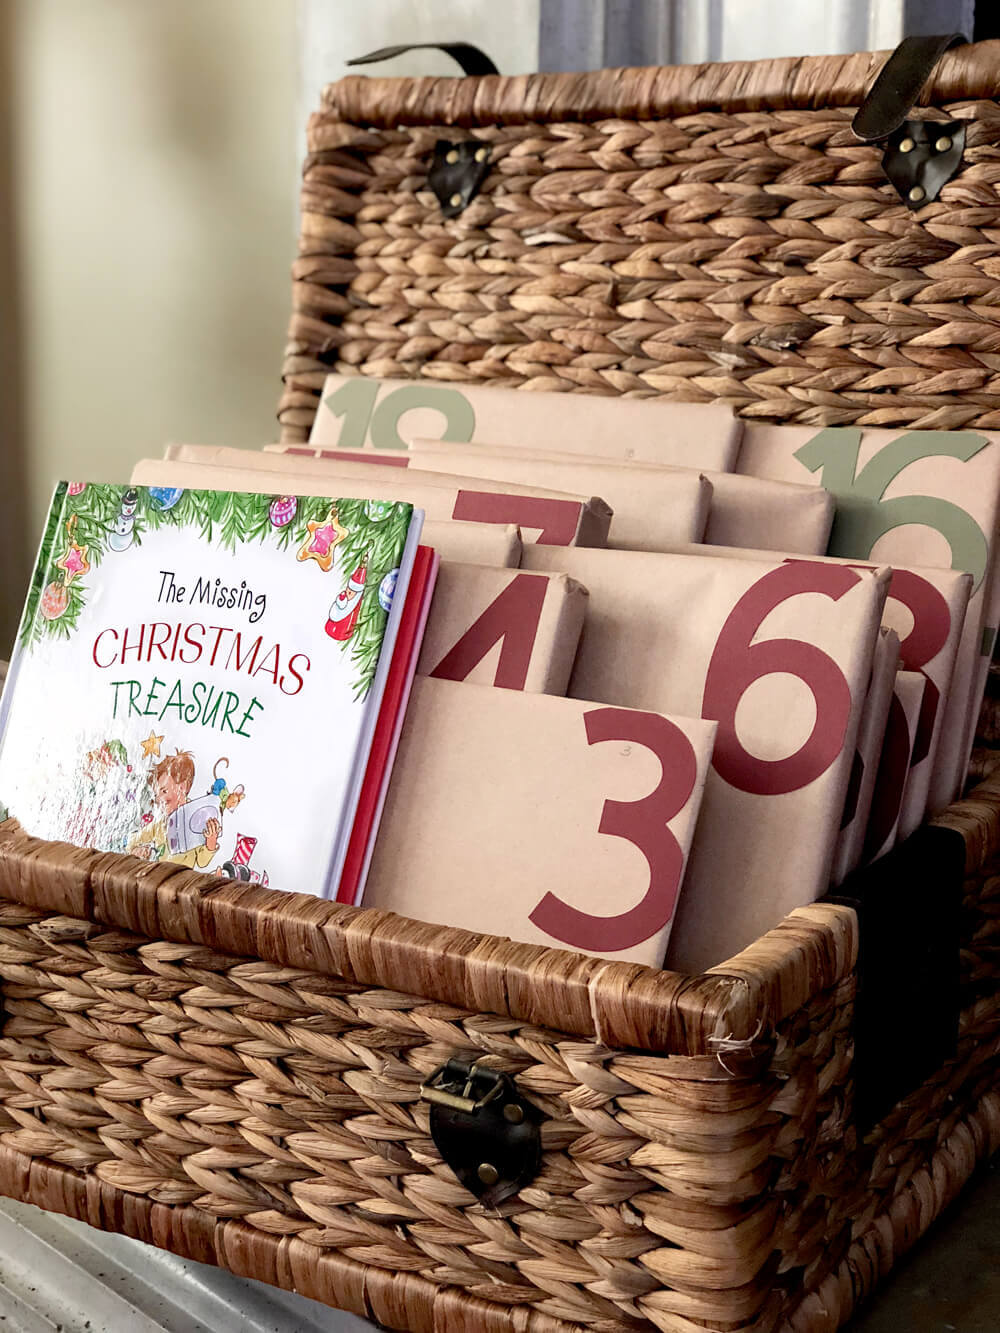 Basket full of books marked for each day counting down to a rustic woodland Christmas